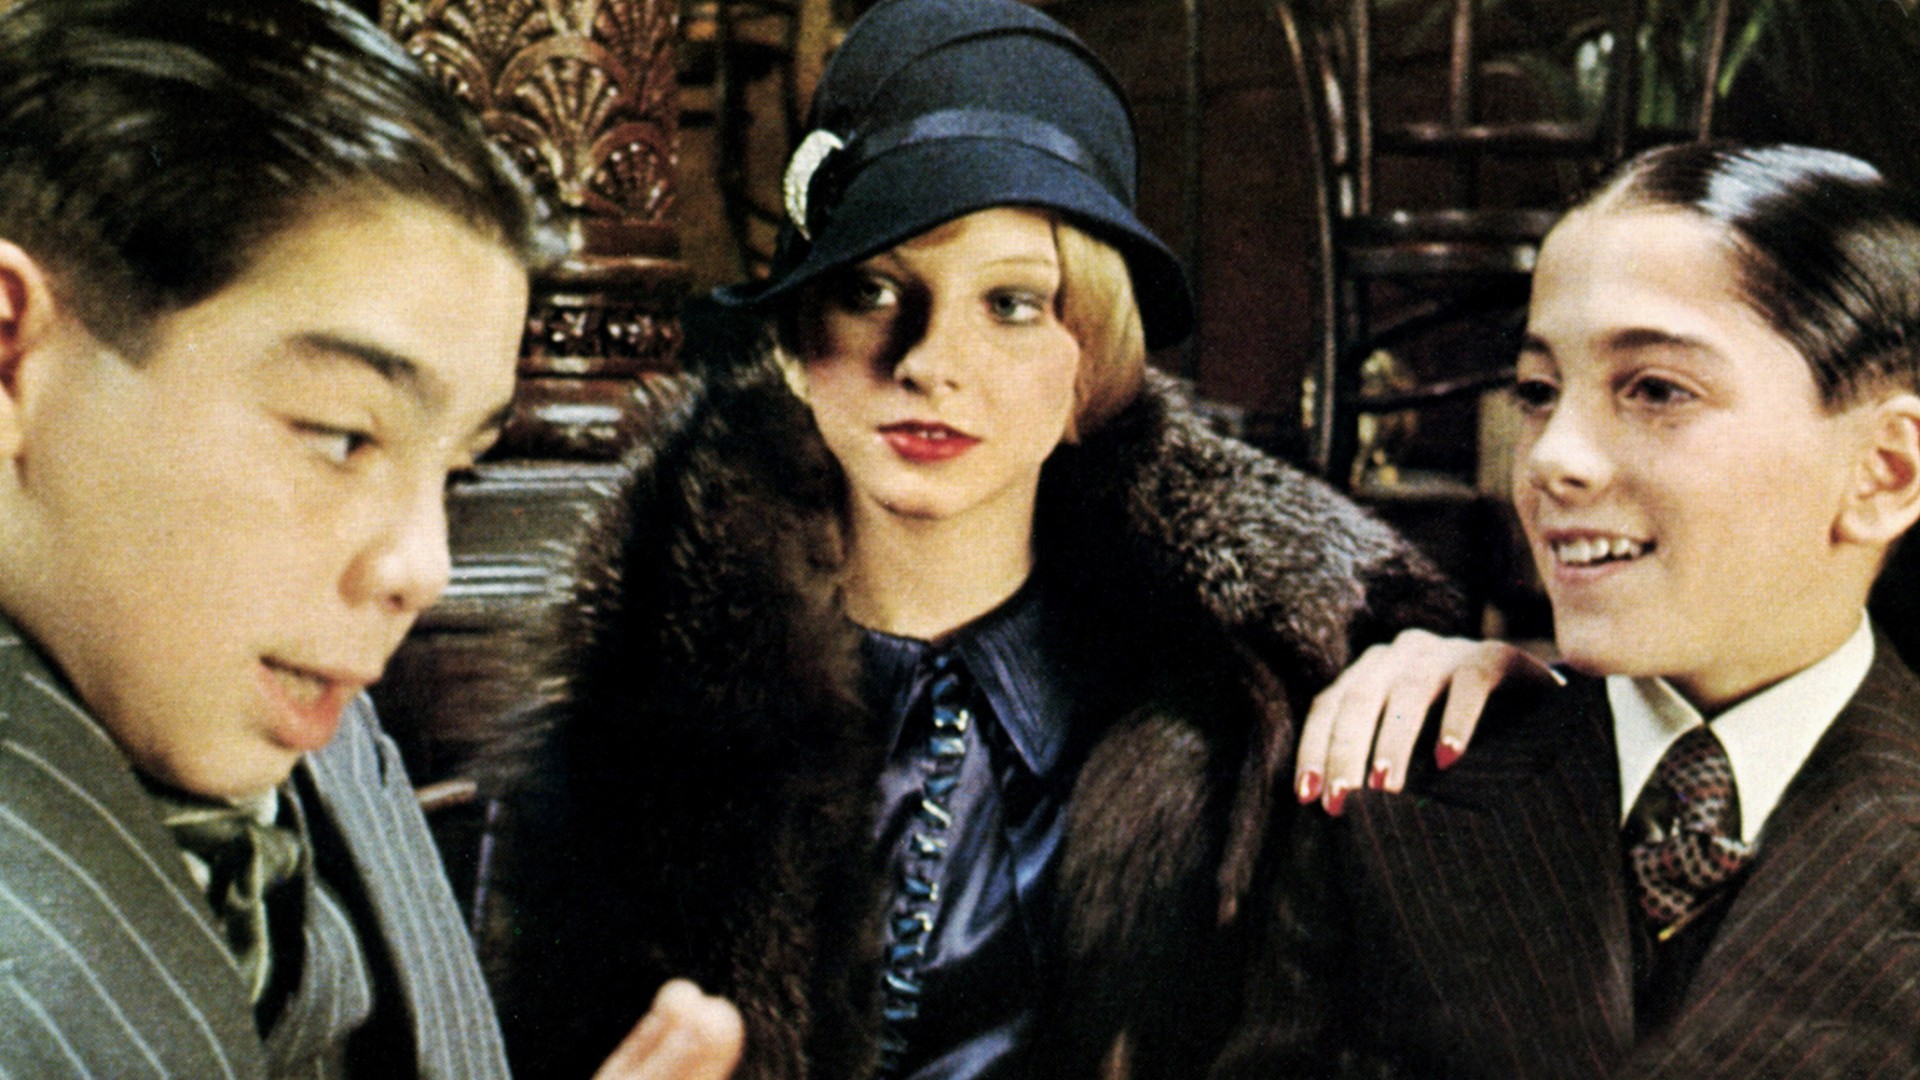 JOHN CASSISI, JODIE FOSTER & SCOTT BAIO Film 'BUGSY MALONE' (1976) Directed By ALAN PARKER 15 September 1976 SSH30317 Allstar Collection/TRISTAR **WARNING** This photograph can only be reproduced by publications in conjunction with the promotion of the above film. For Editorial Use Only